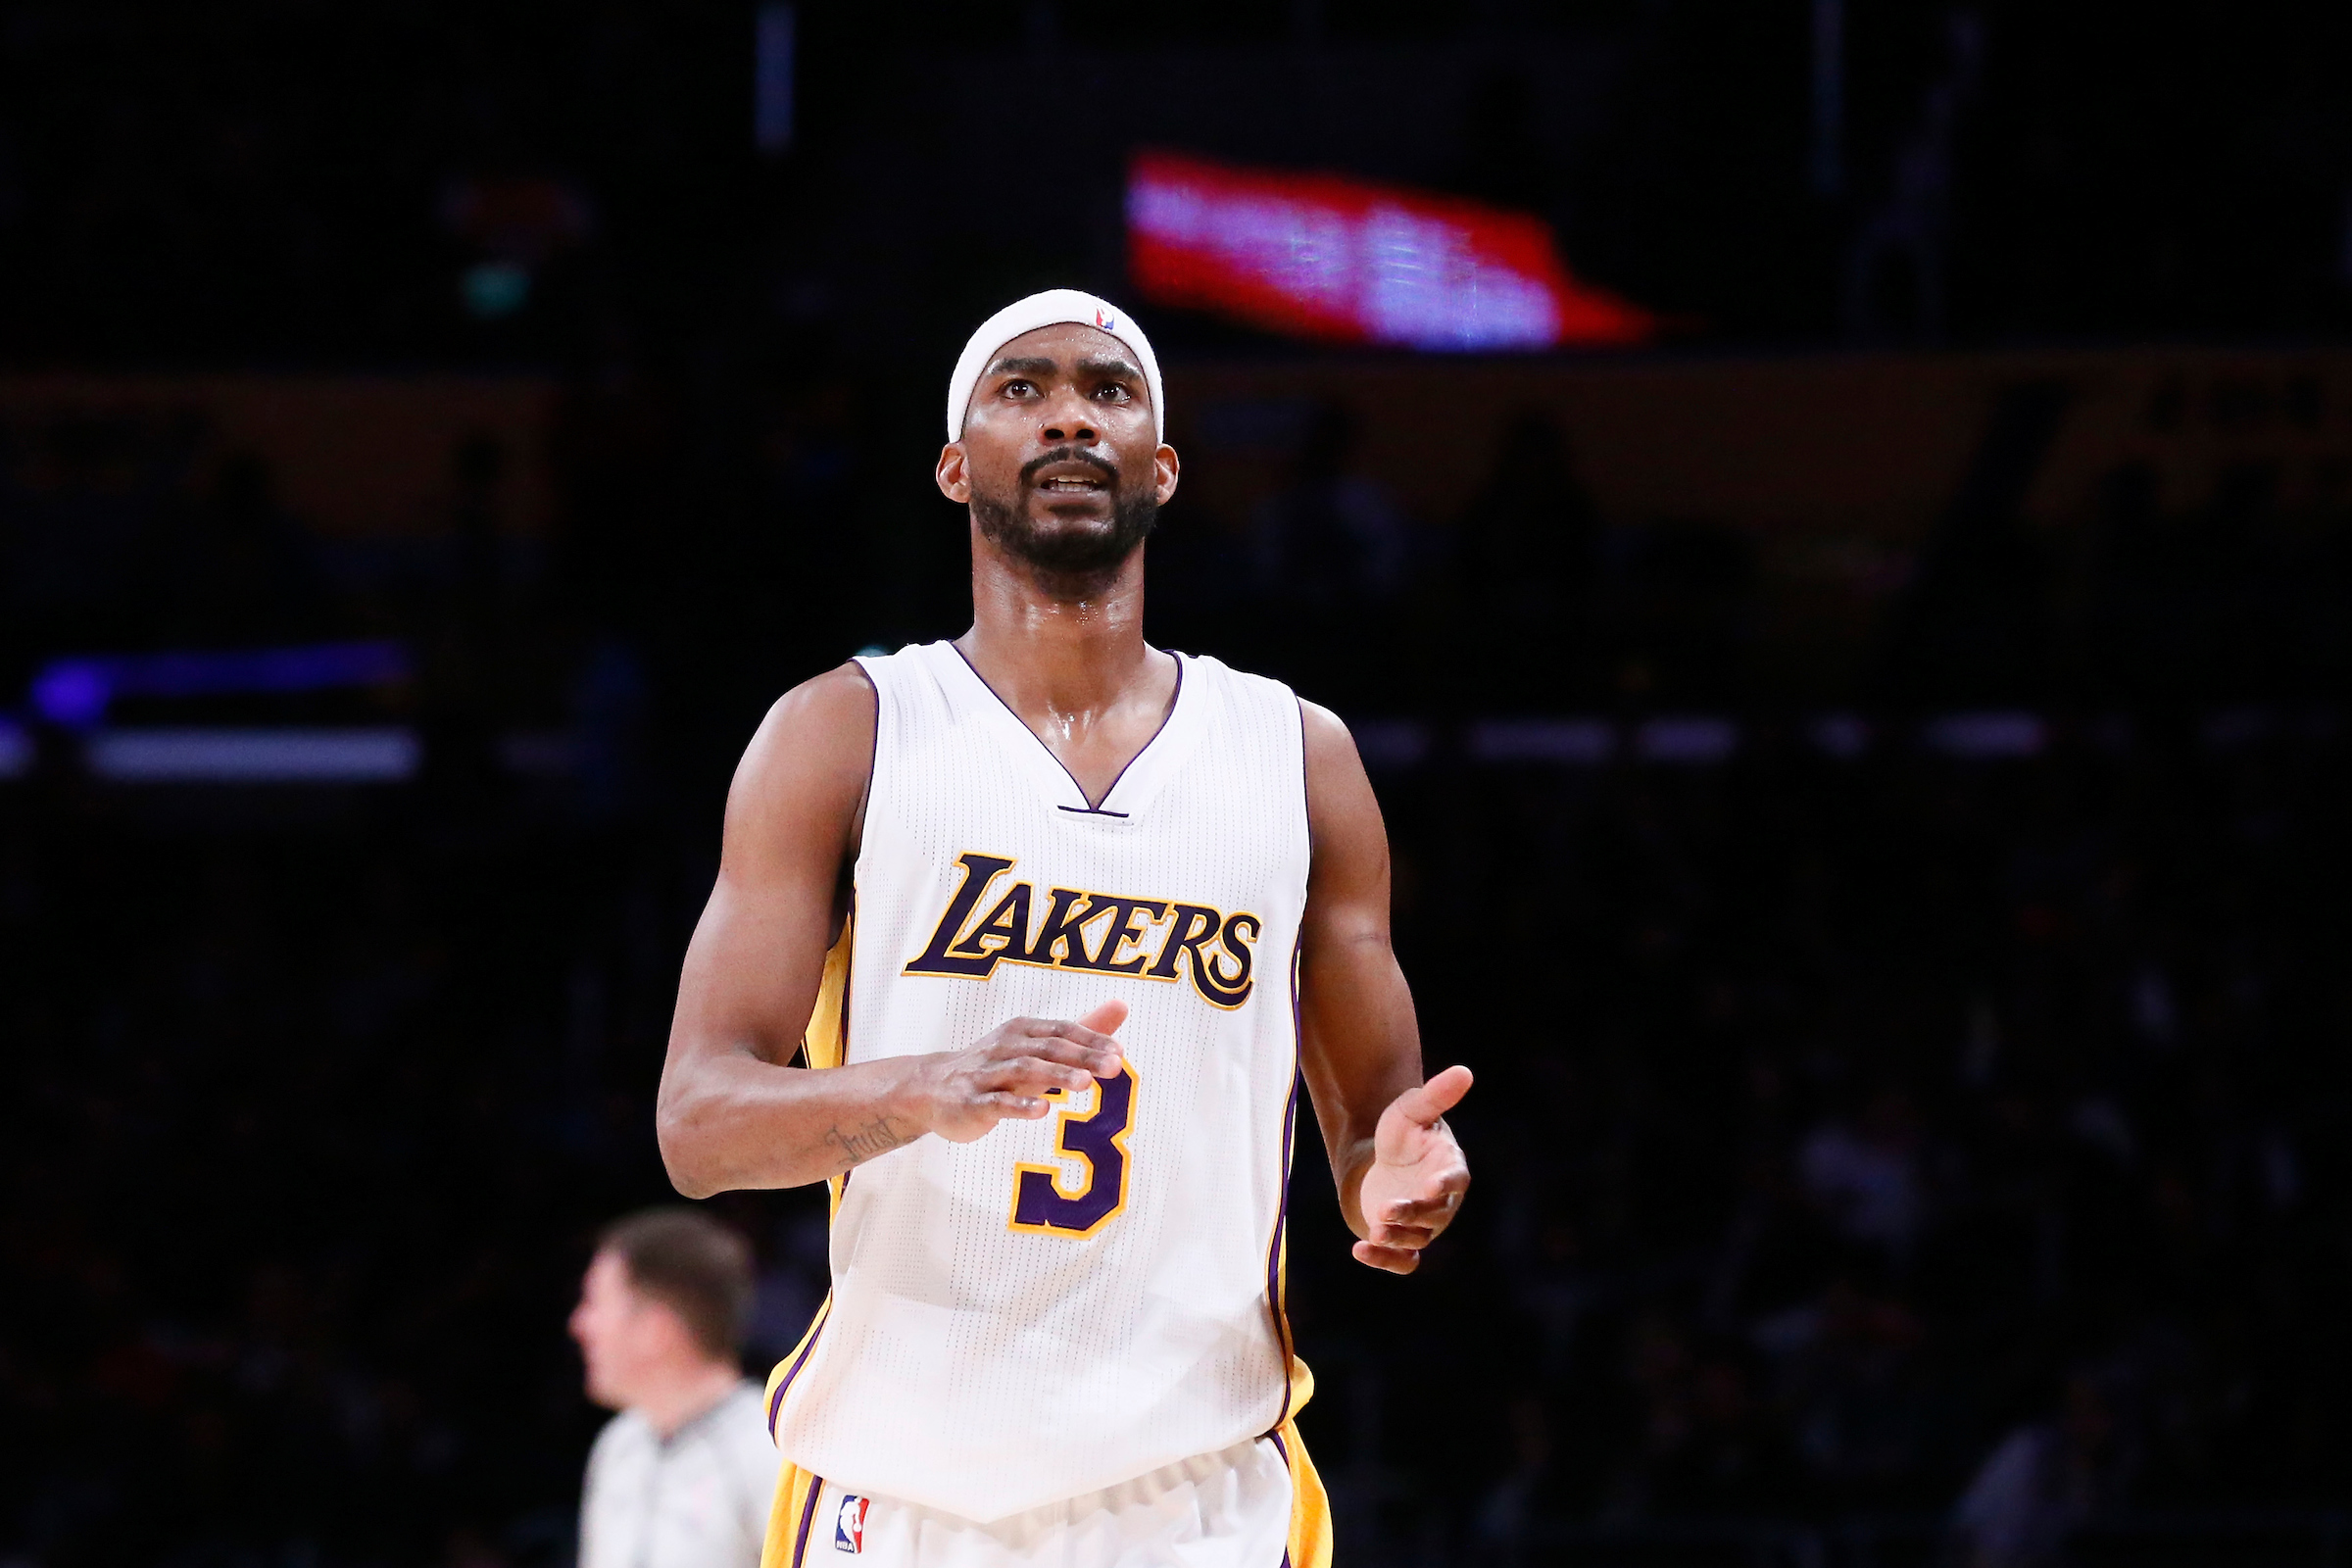 Belle pioche des Kings qui signent Corey Brewer